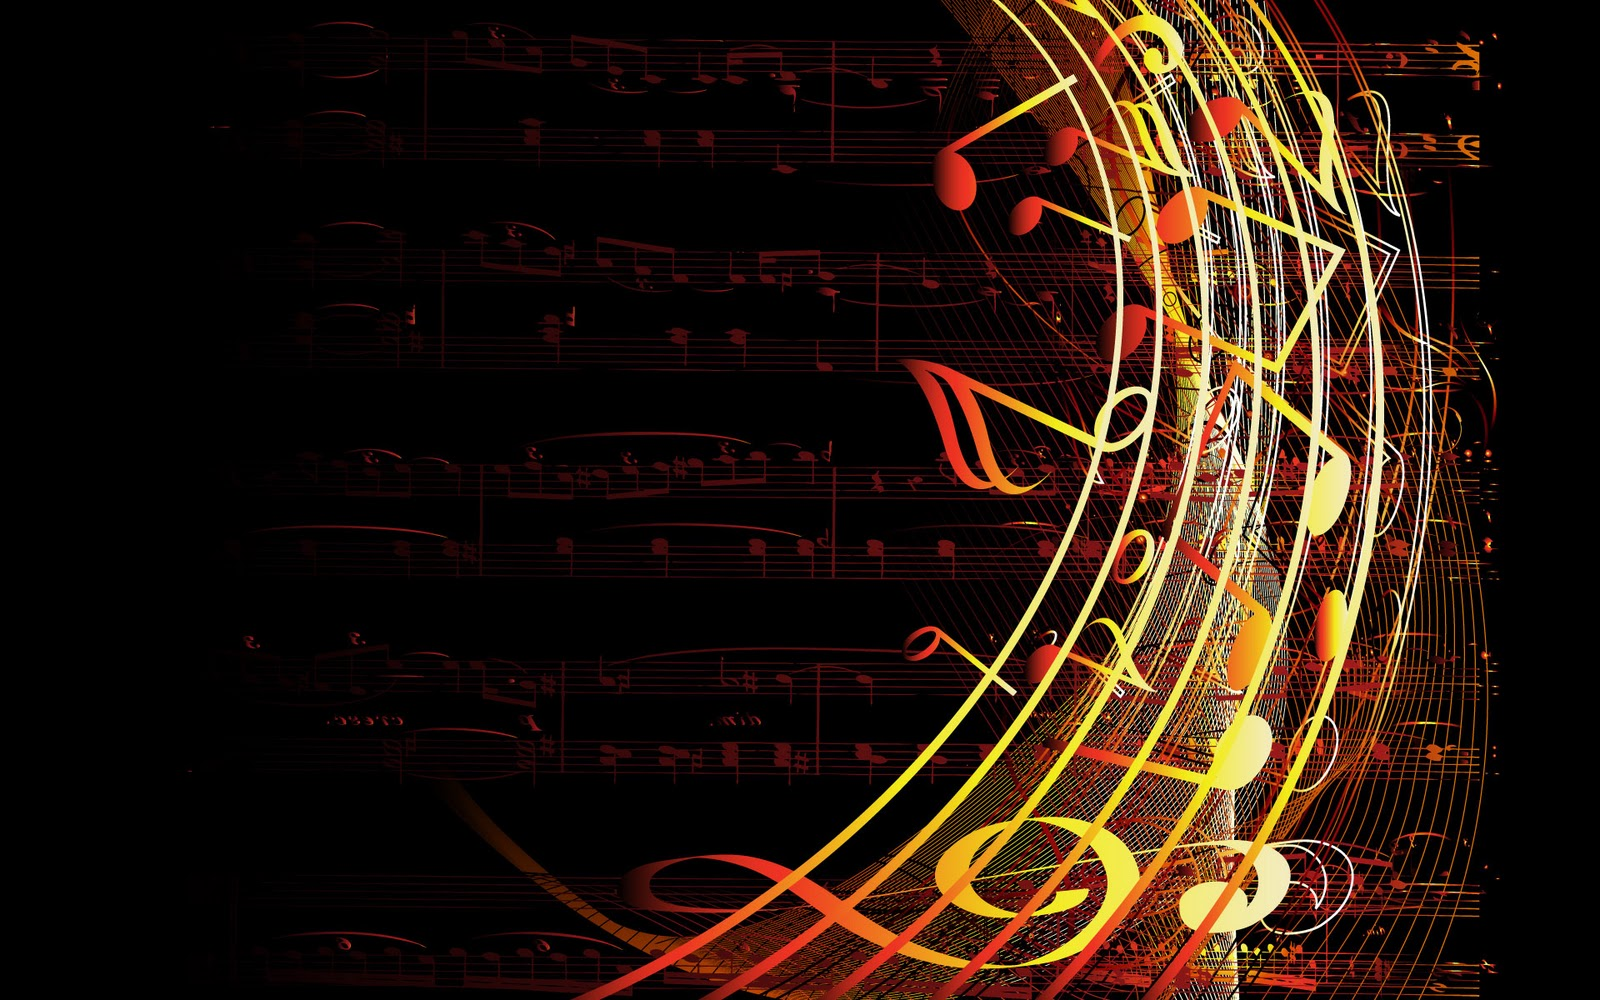 Cool Music Note Wallpapers: Colorful Musical Notes Abstract Wallpaper